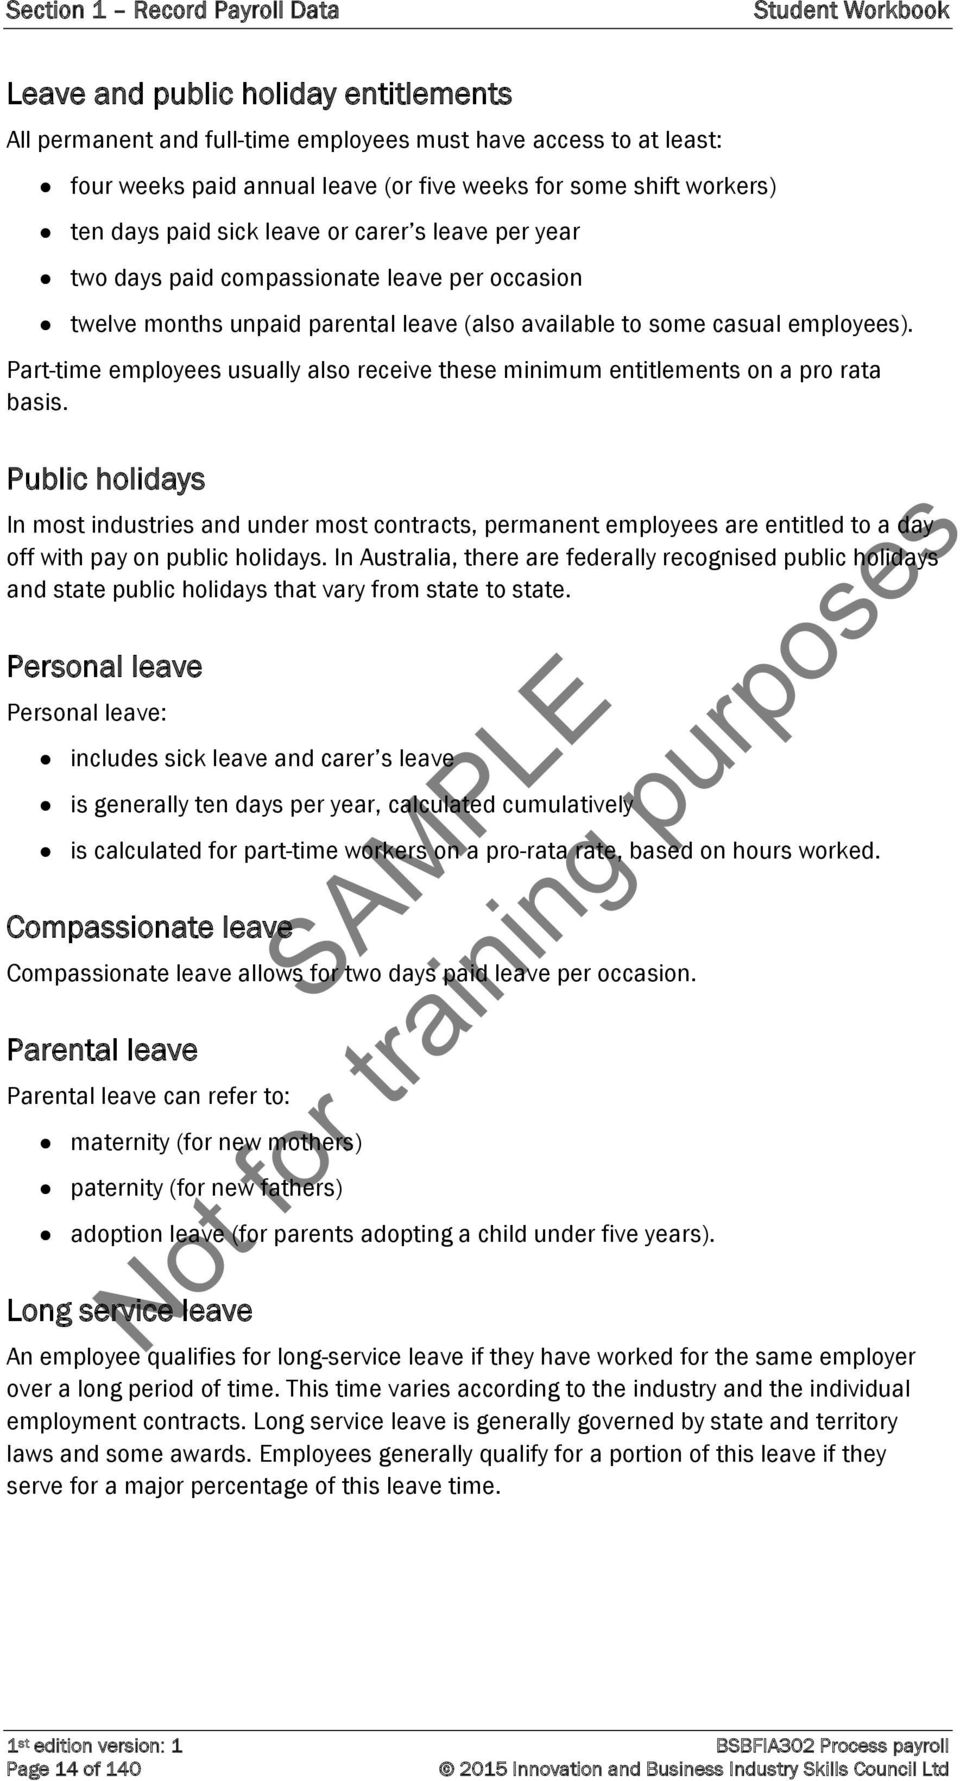 Part-time employees usually also receive these minimum entitlements on a pro rata basis.